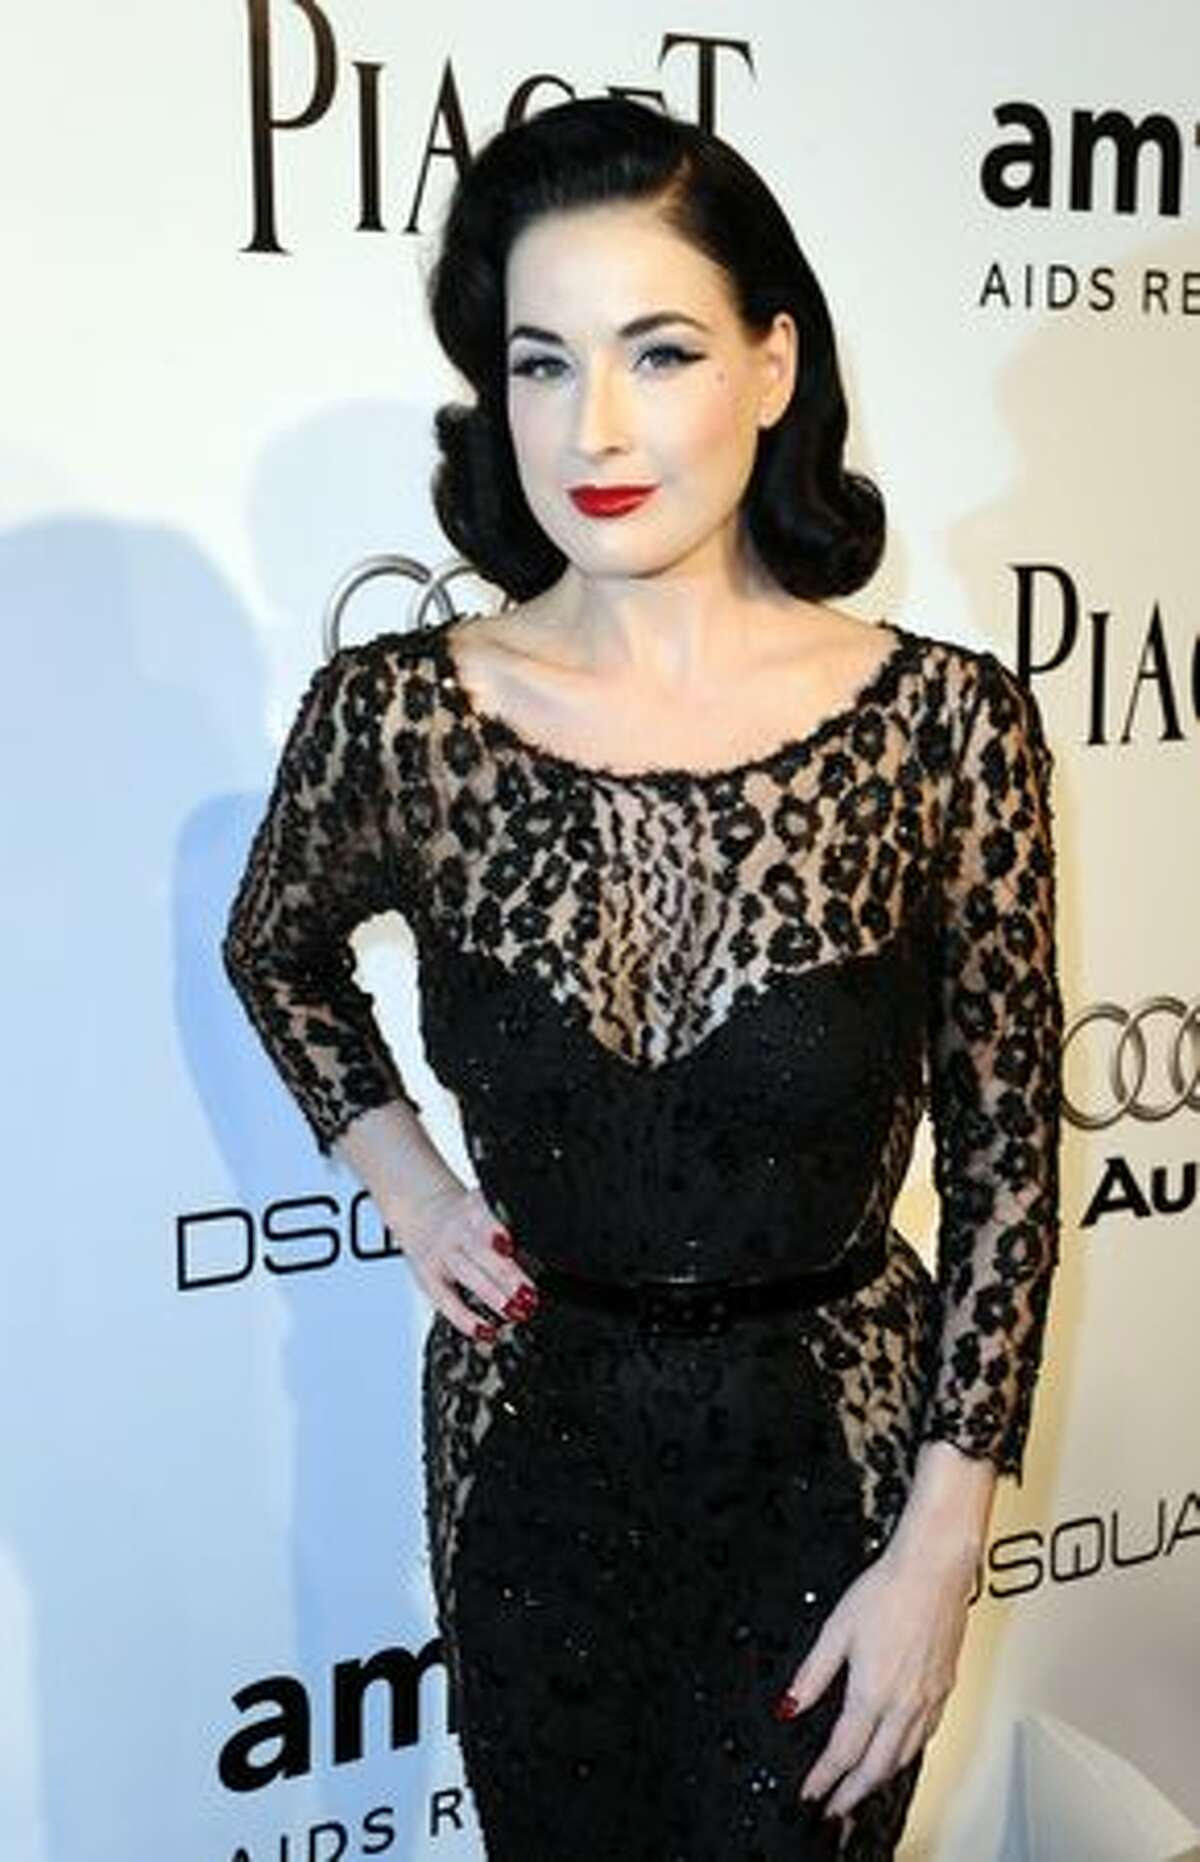 Dita Von Teese arrives at the amfAR's Inspiration Gala Los Angeles to benefit the Foundation's AIDS research programs at the Chateau Marmont in Hollywood, California.